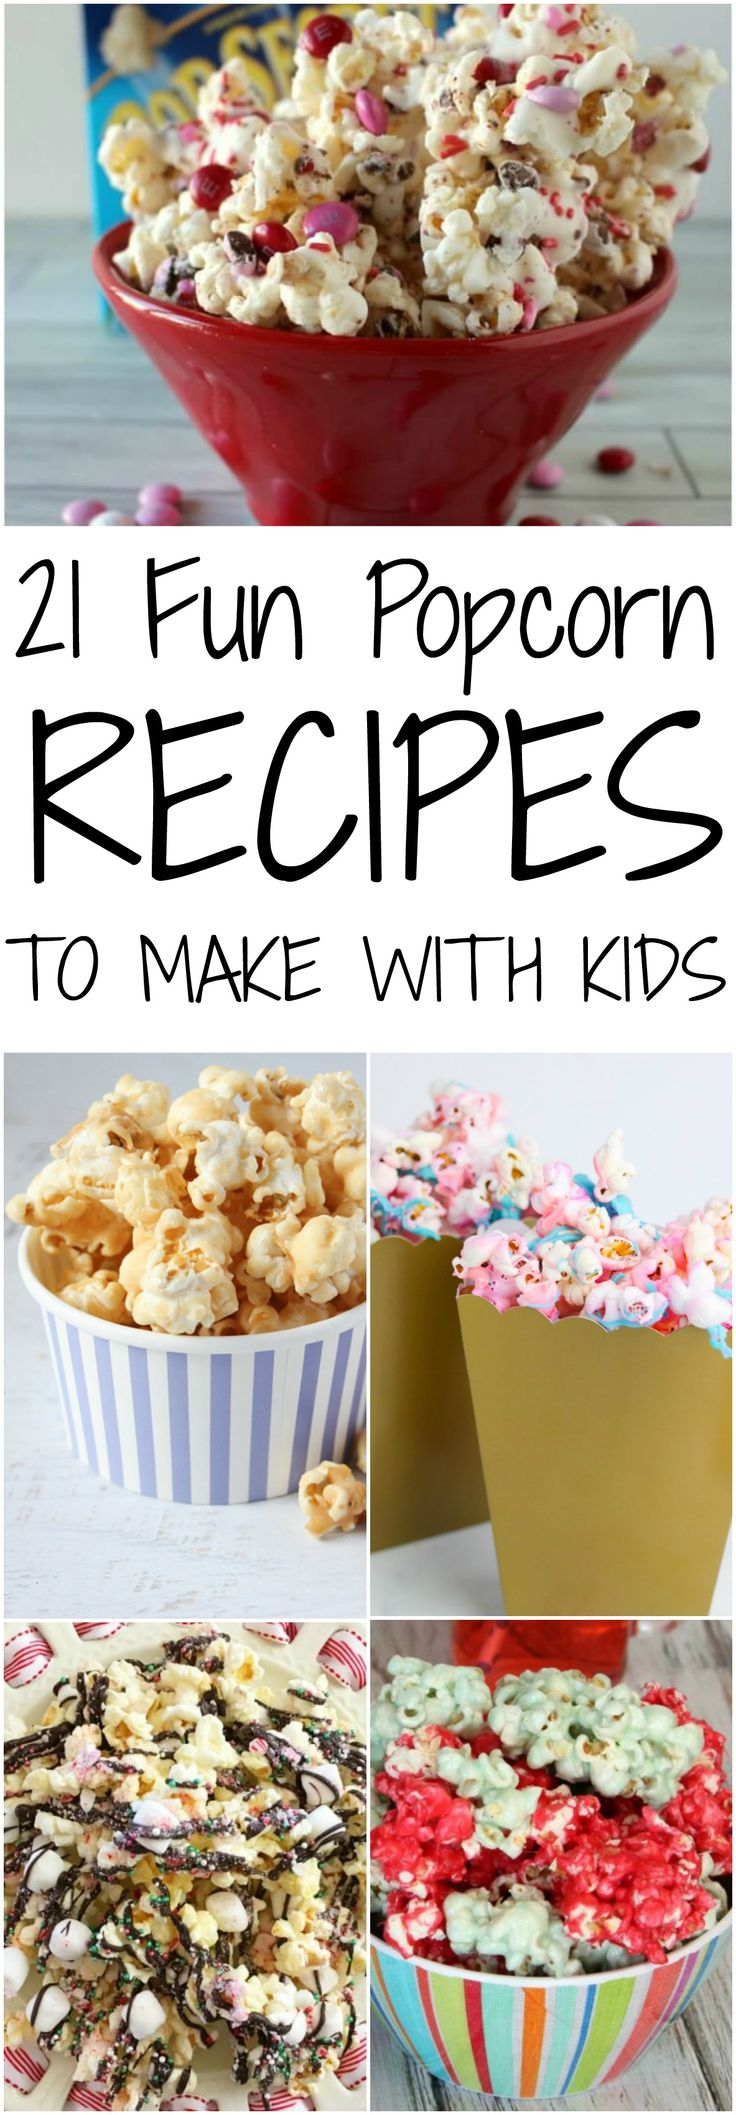 21 Fun Popcorn Recipes to make with kids via @hutt…